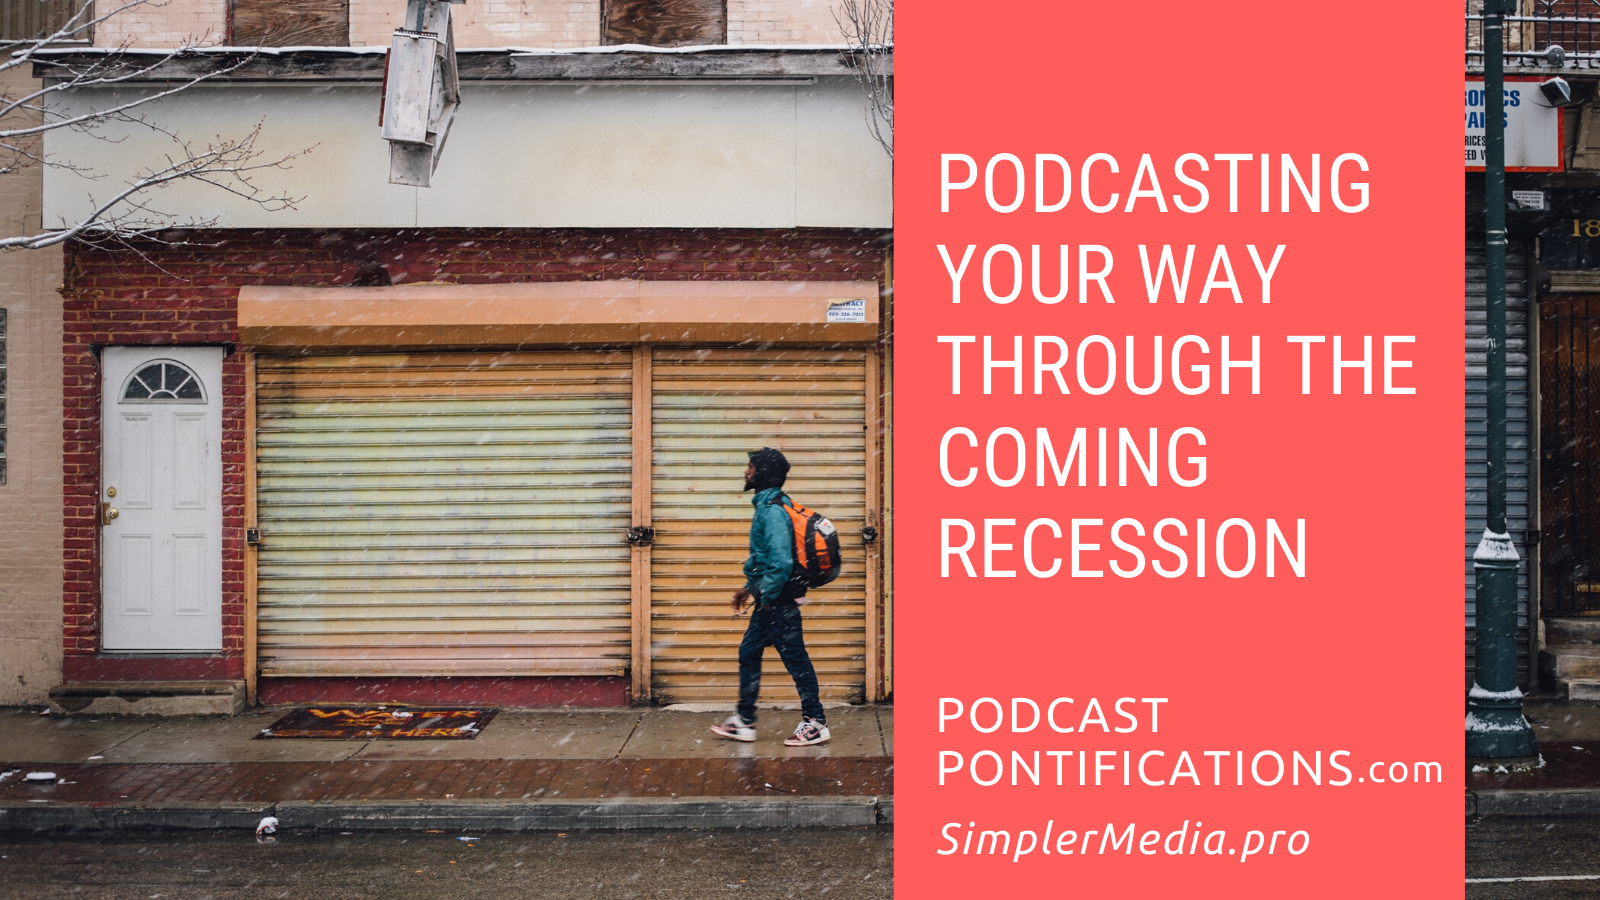 """Shuttered storefronts next to the title slide """"Podcasting Your Way Through The Coming Recession"""""""